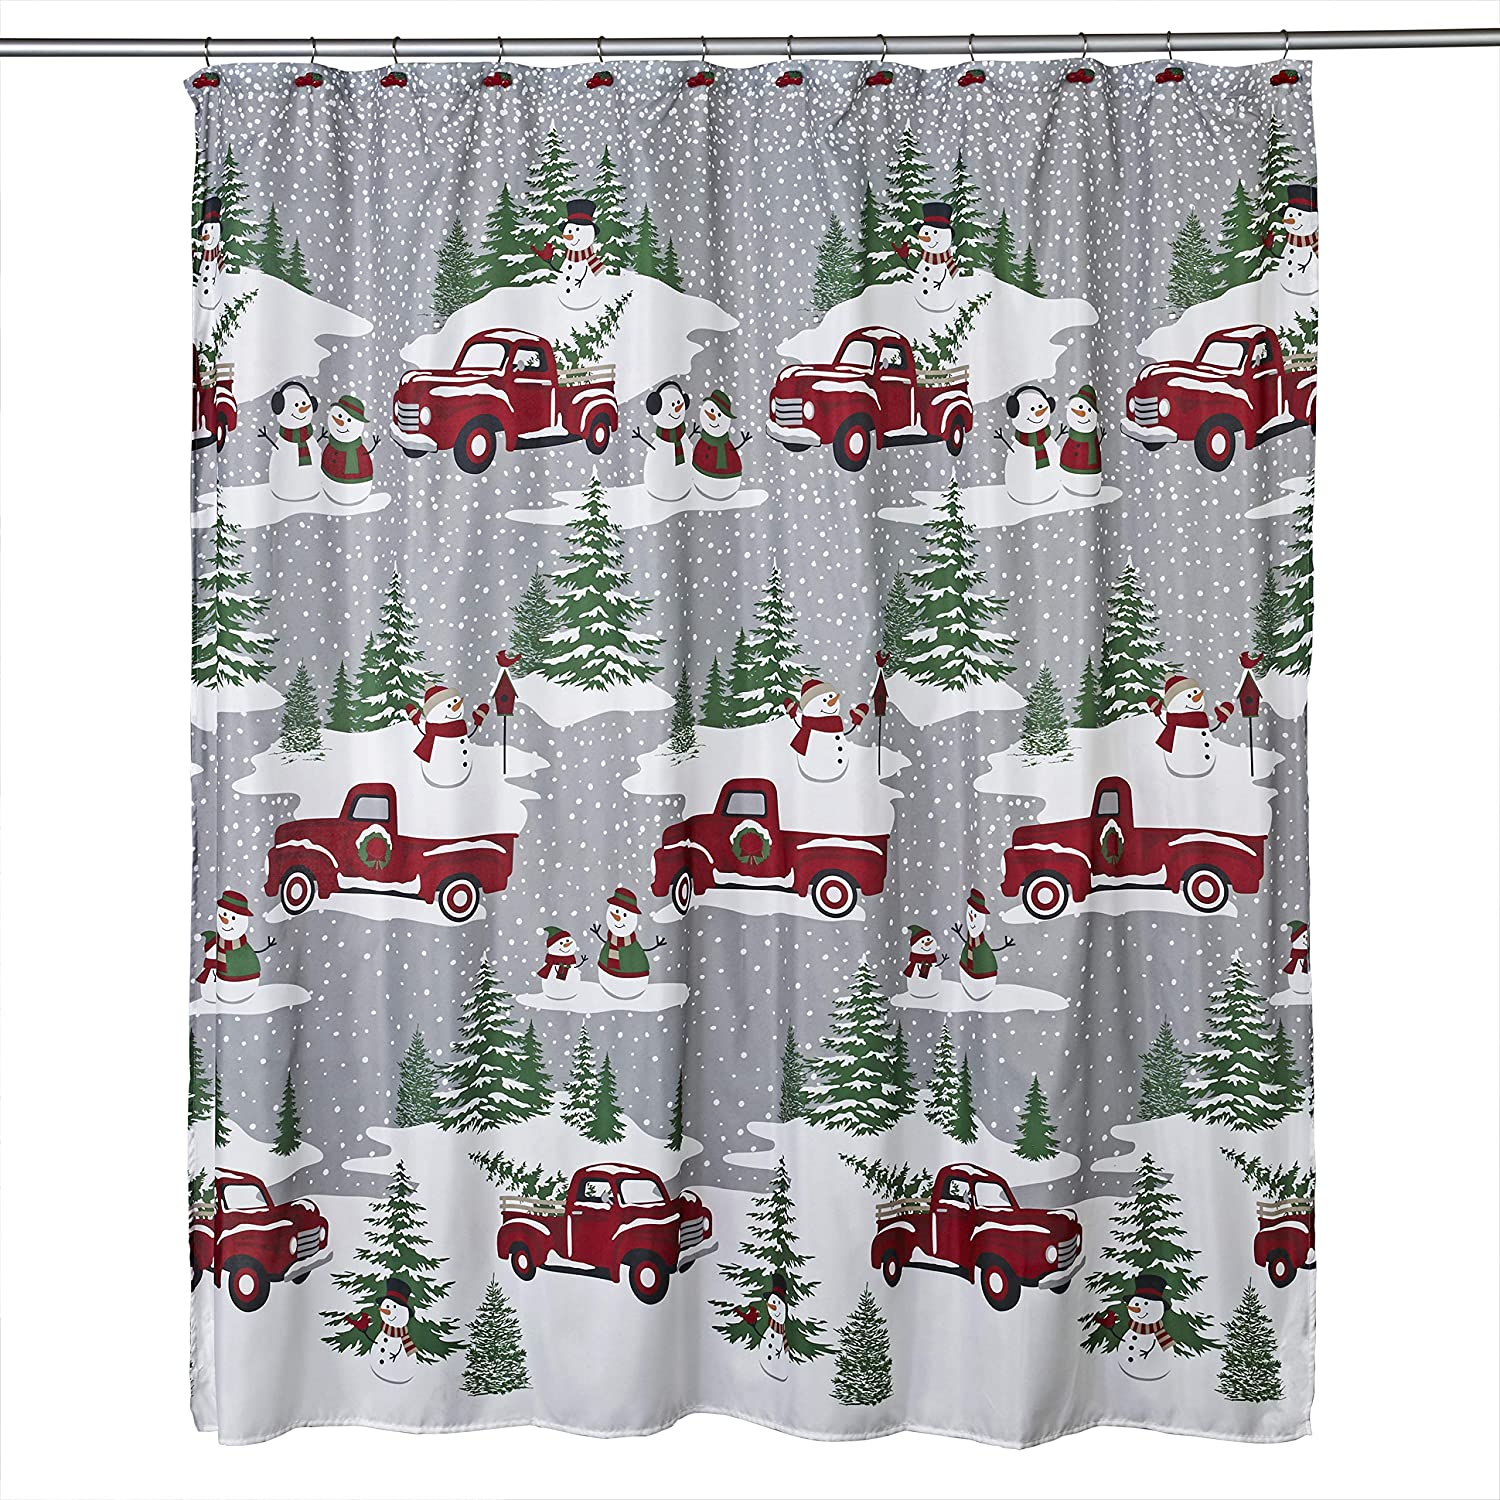 SKL HOME by Saturday Knight Ltd. Snowy Truck Shower Curtain and Hook Gift Set, Multicolored